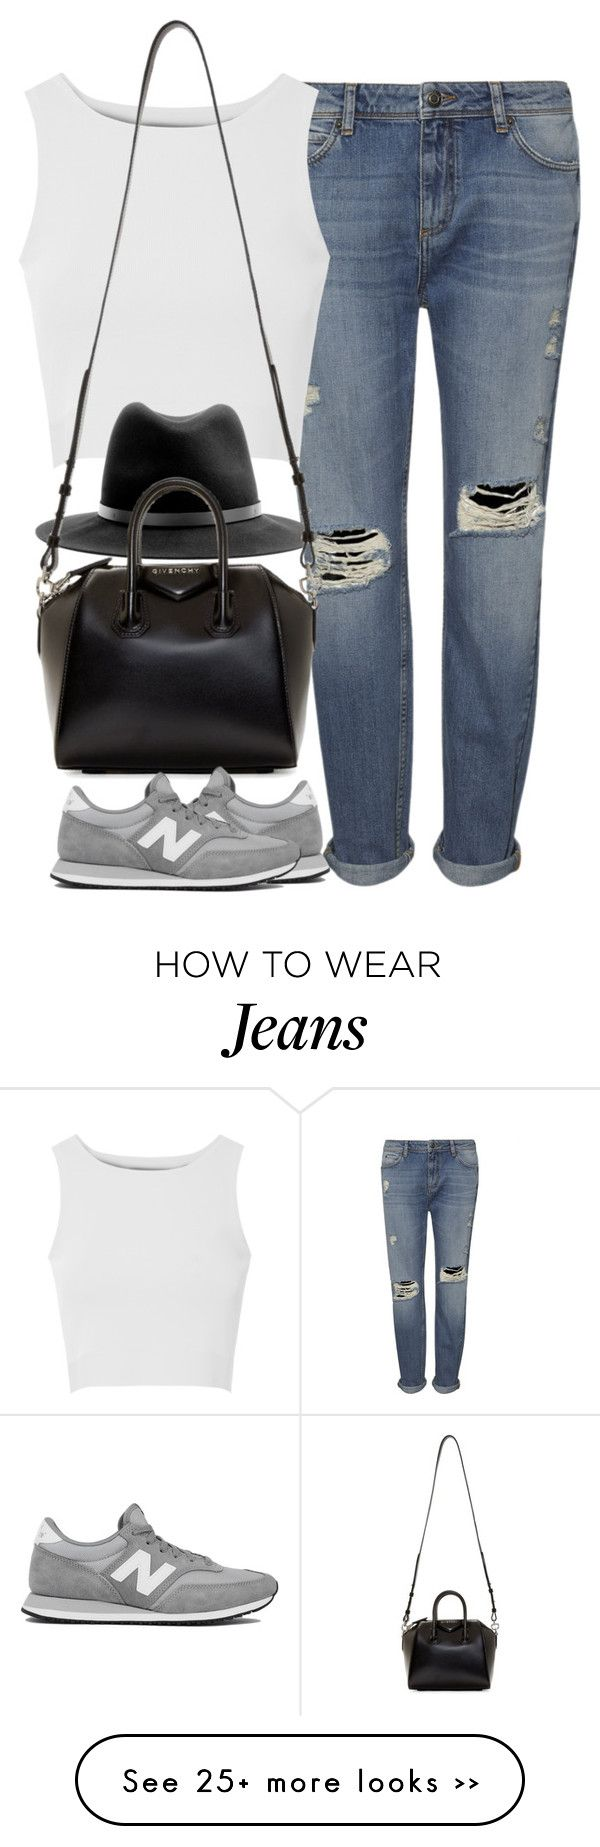 """""""Untitled #3747"""" by london-wanderlust on Polyvore featuring Whistles, Glamorous, rag & bone, Givenchy and New Balance"""